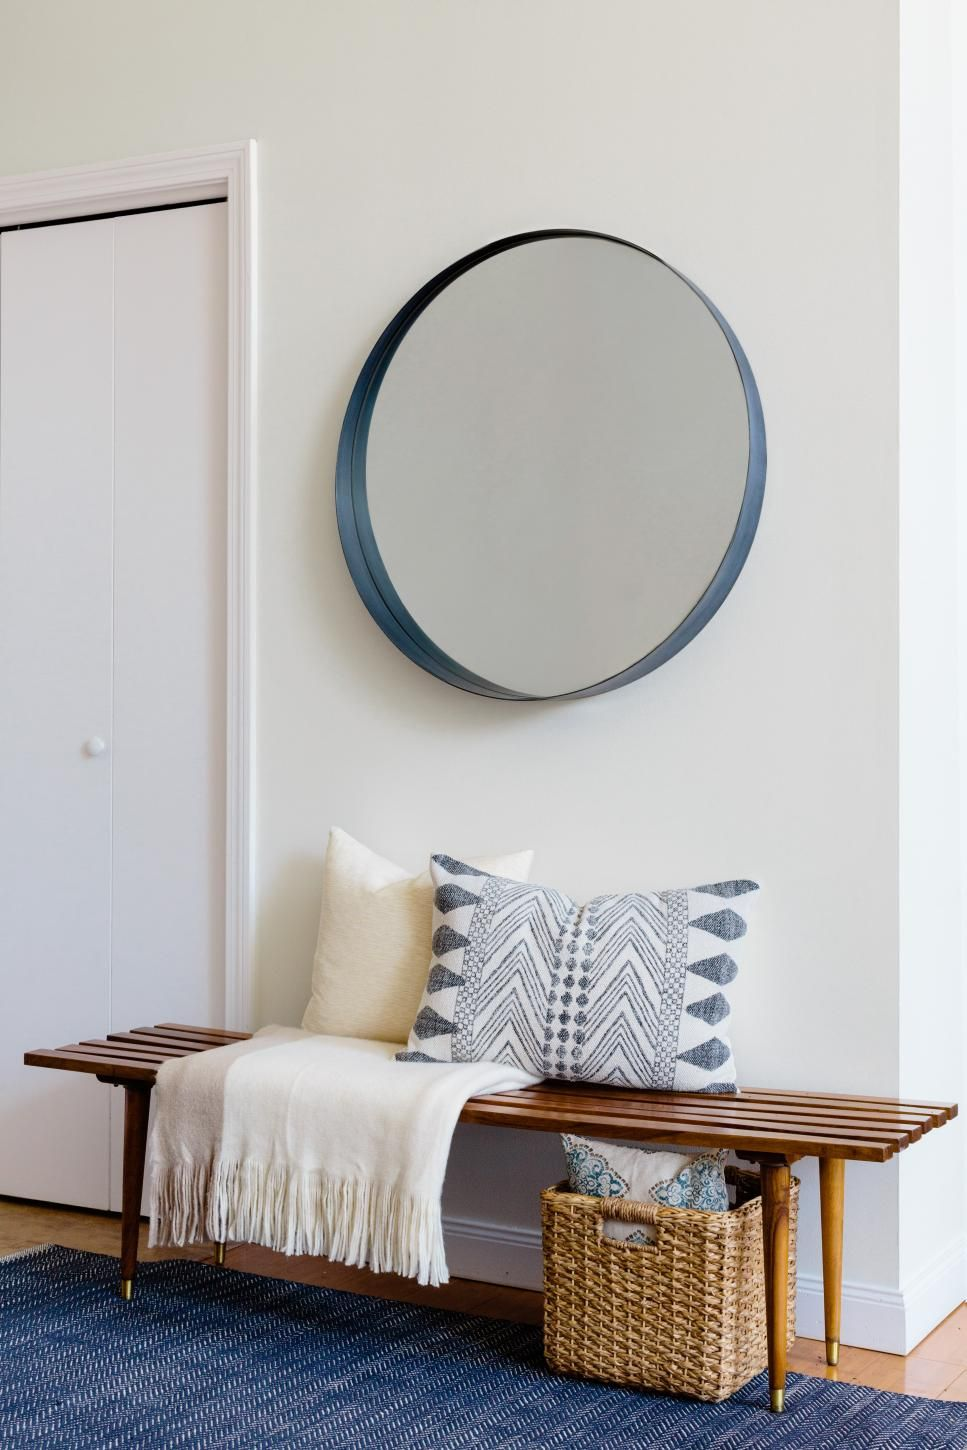 Hallway mirror kmart  Rooms Viewer  Rooms and Spaces Design Ideas  Photos of Kitchen